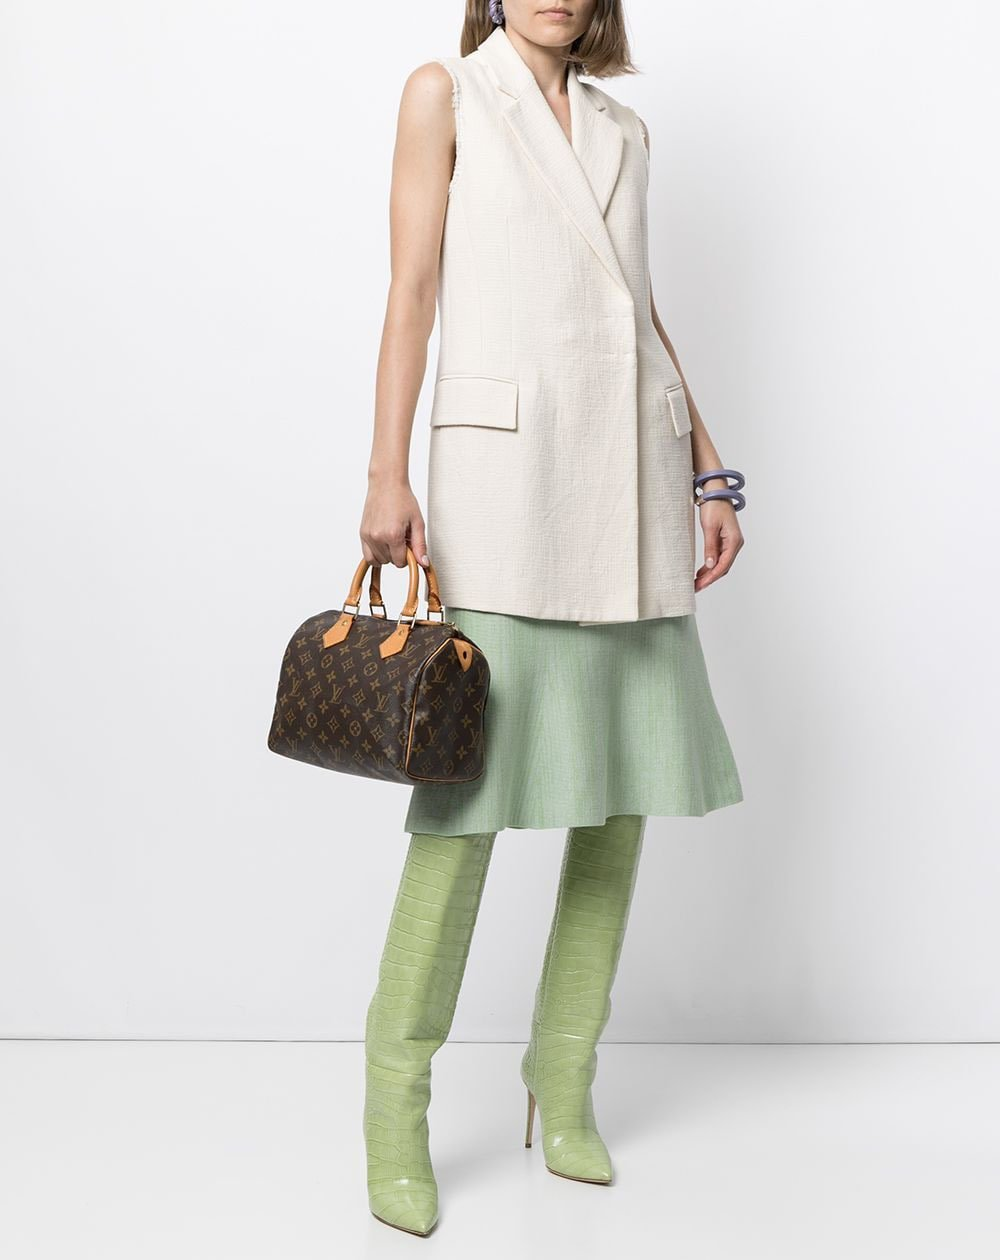 The Louis Vuitton Speedy is one of the luxury brand's most purchased bags, featuring the classic monogram canvas